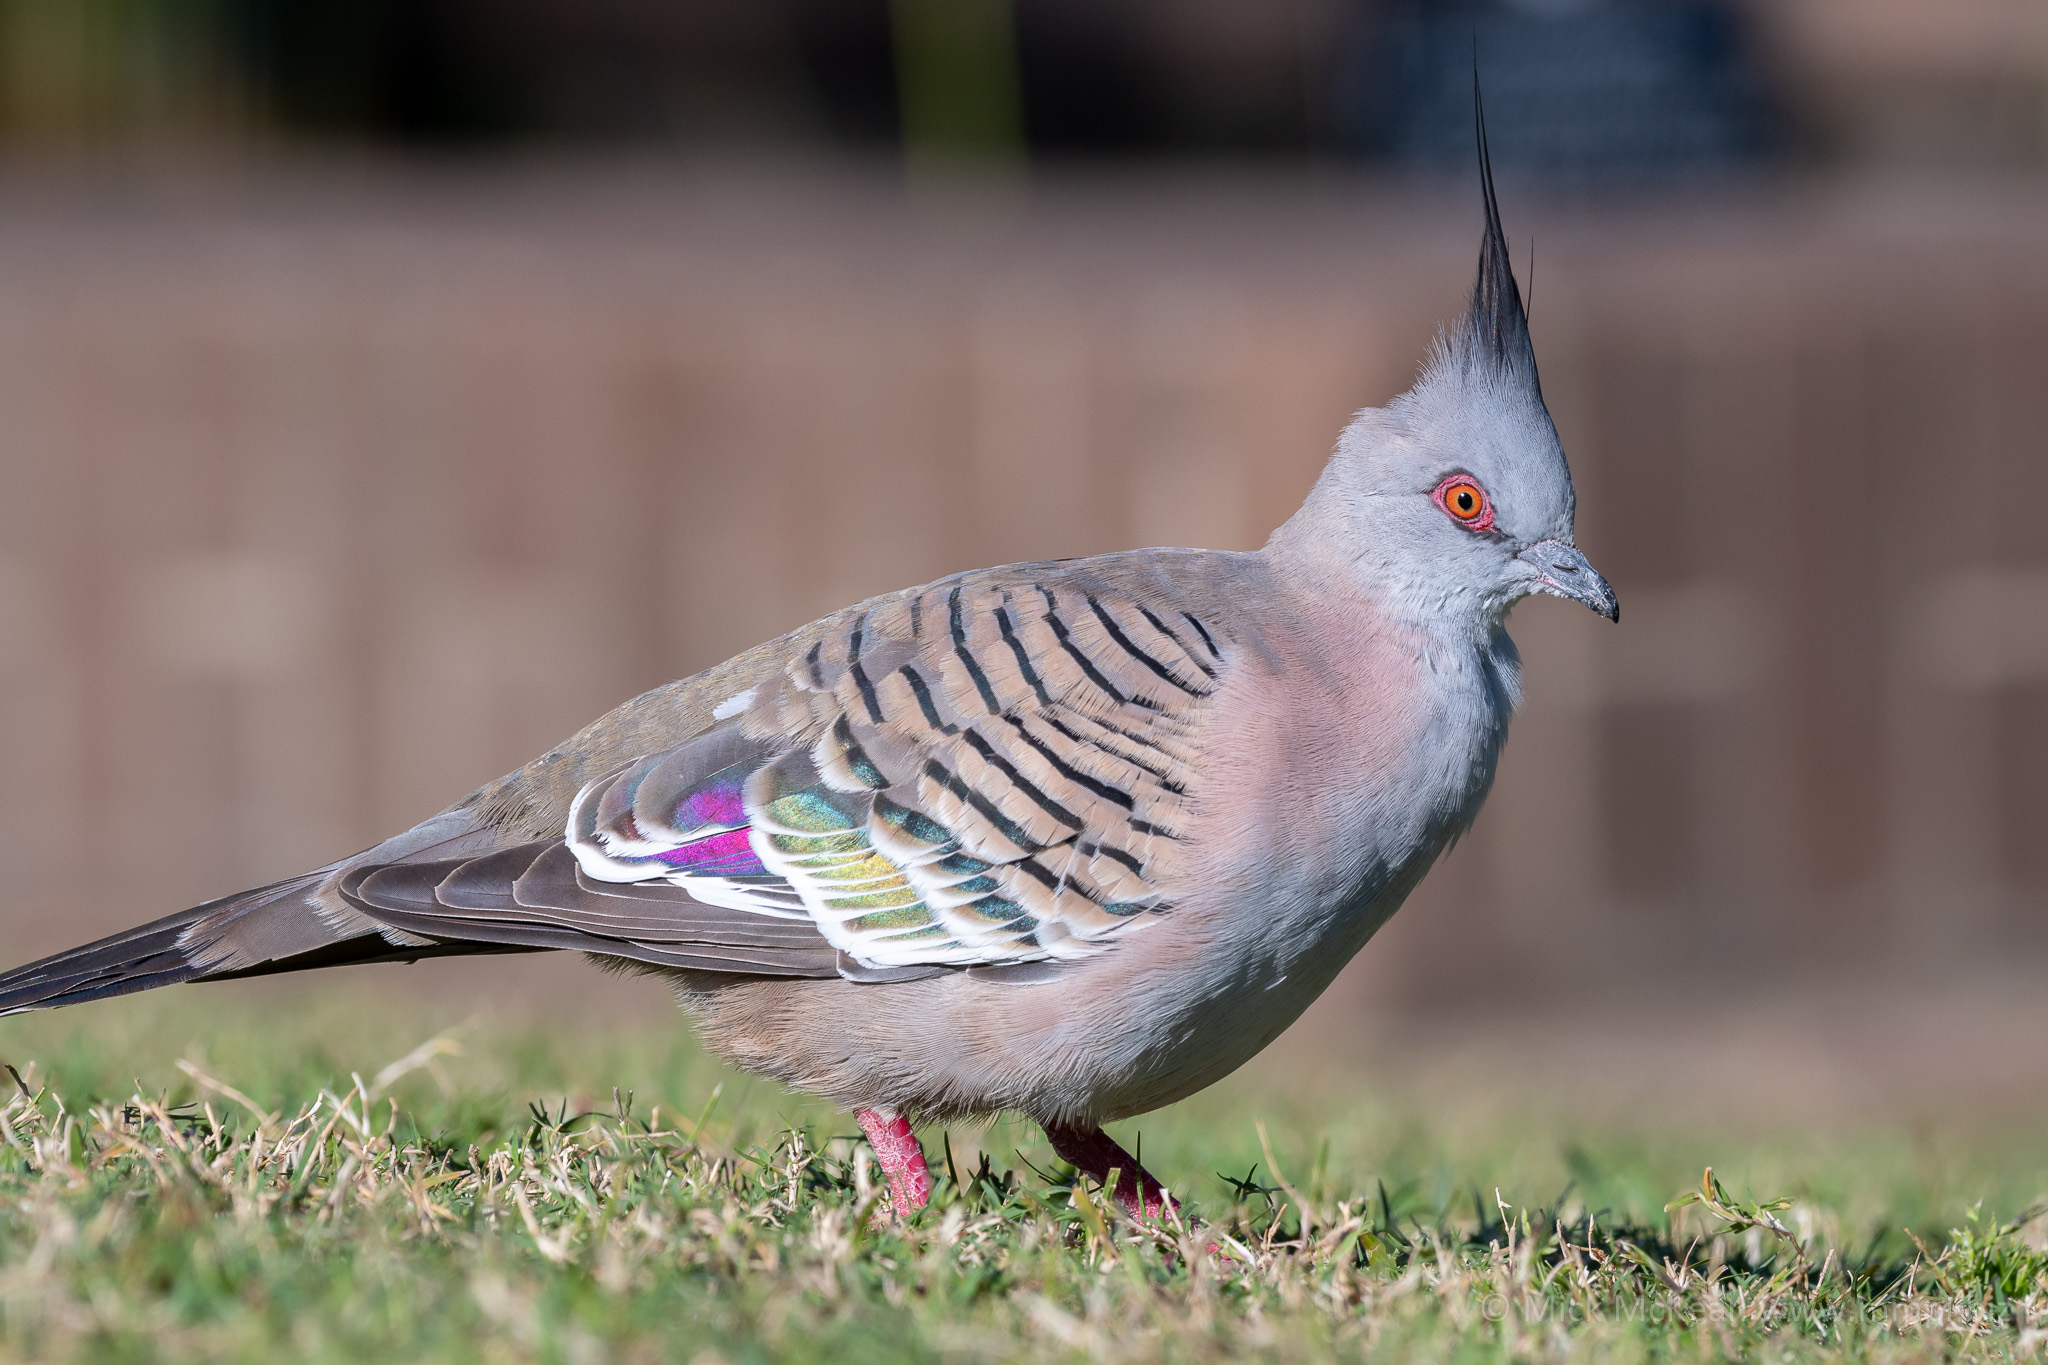 Crested Pigeon on the lawn